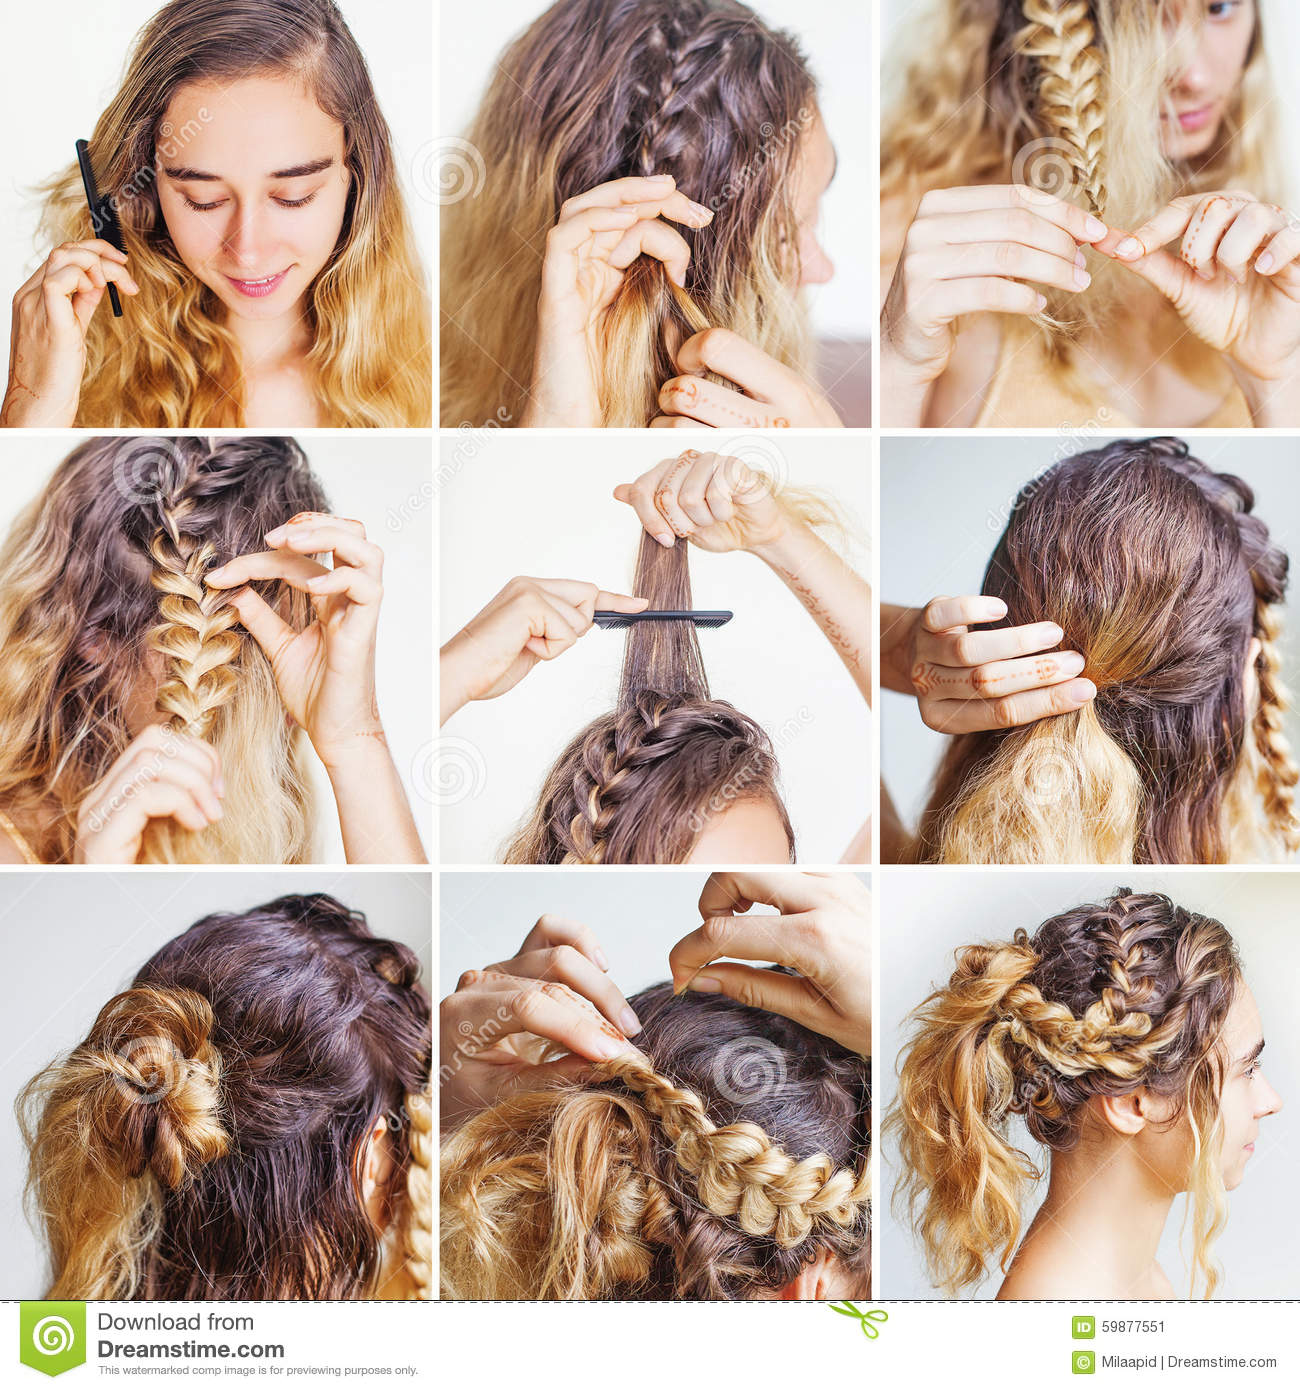 Brilliant Braided Updo Tutorial For A Curly Hair Stock Photo Image 59877551 Short Hairstyles Gunalazisus